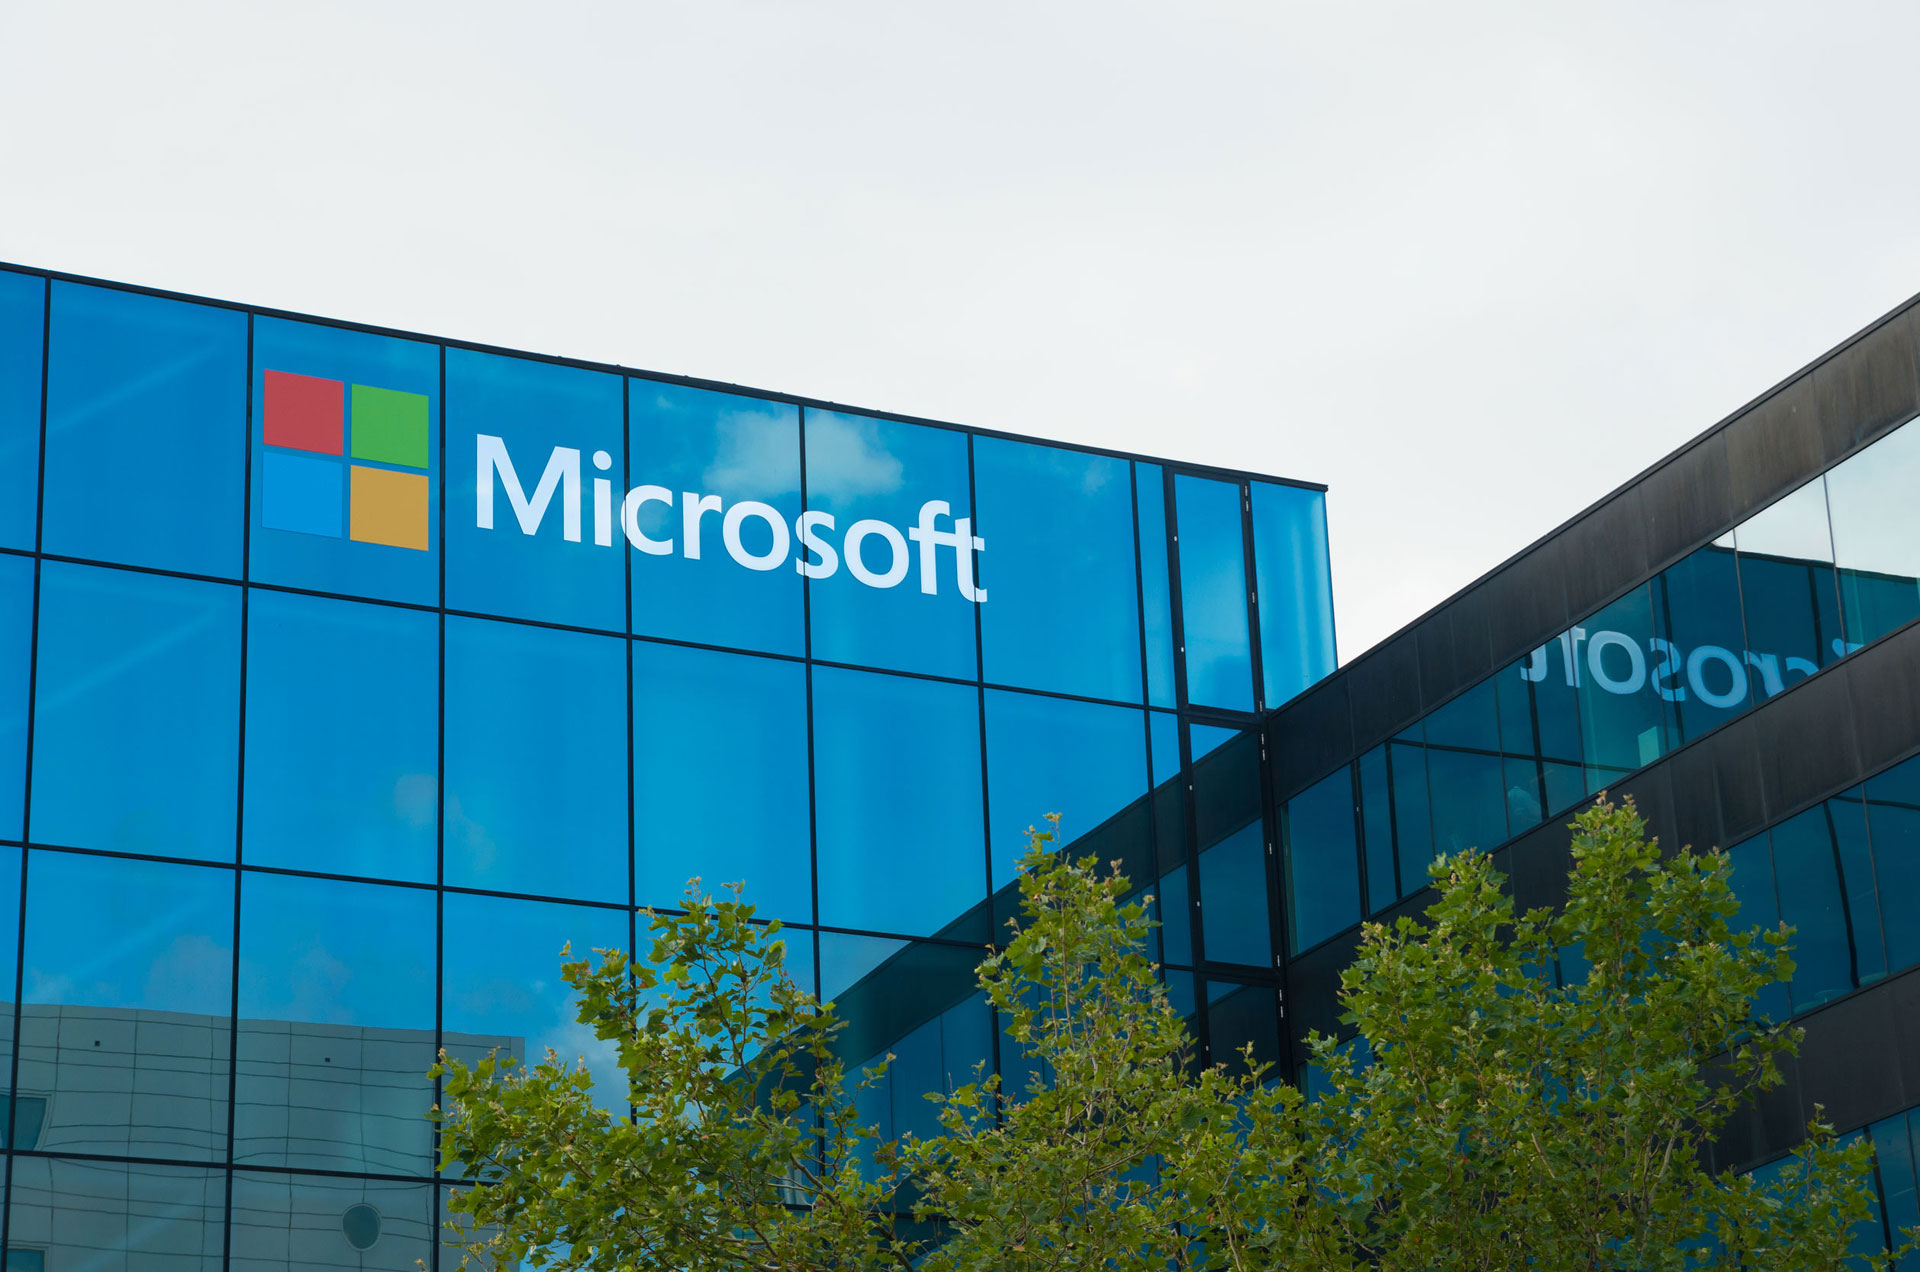 Microsoft greatness began in an Albuquerque garage; Astreea's happened in a top-of-the-line aerospace factory. Now we're proudly sharing the dream.